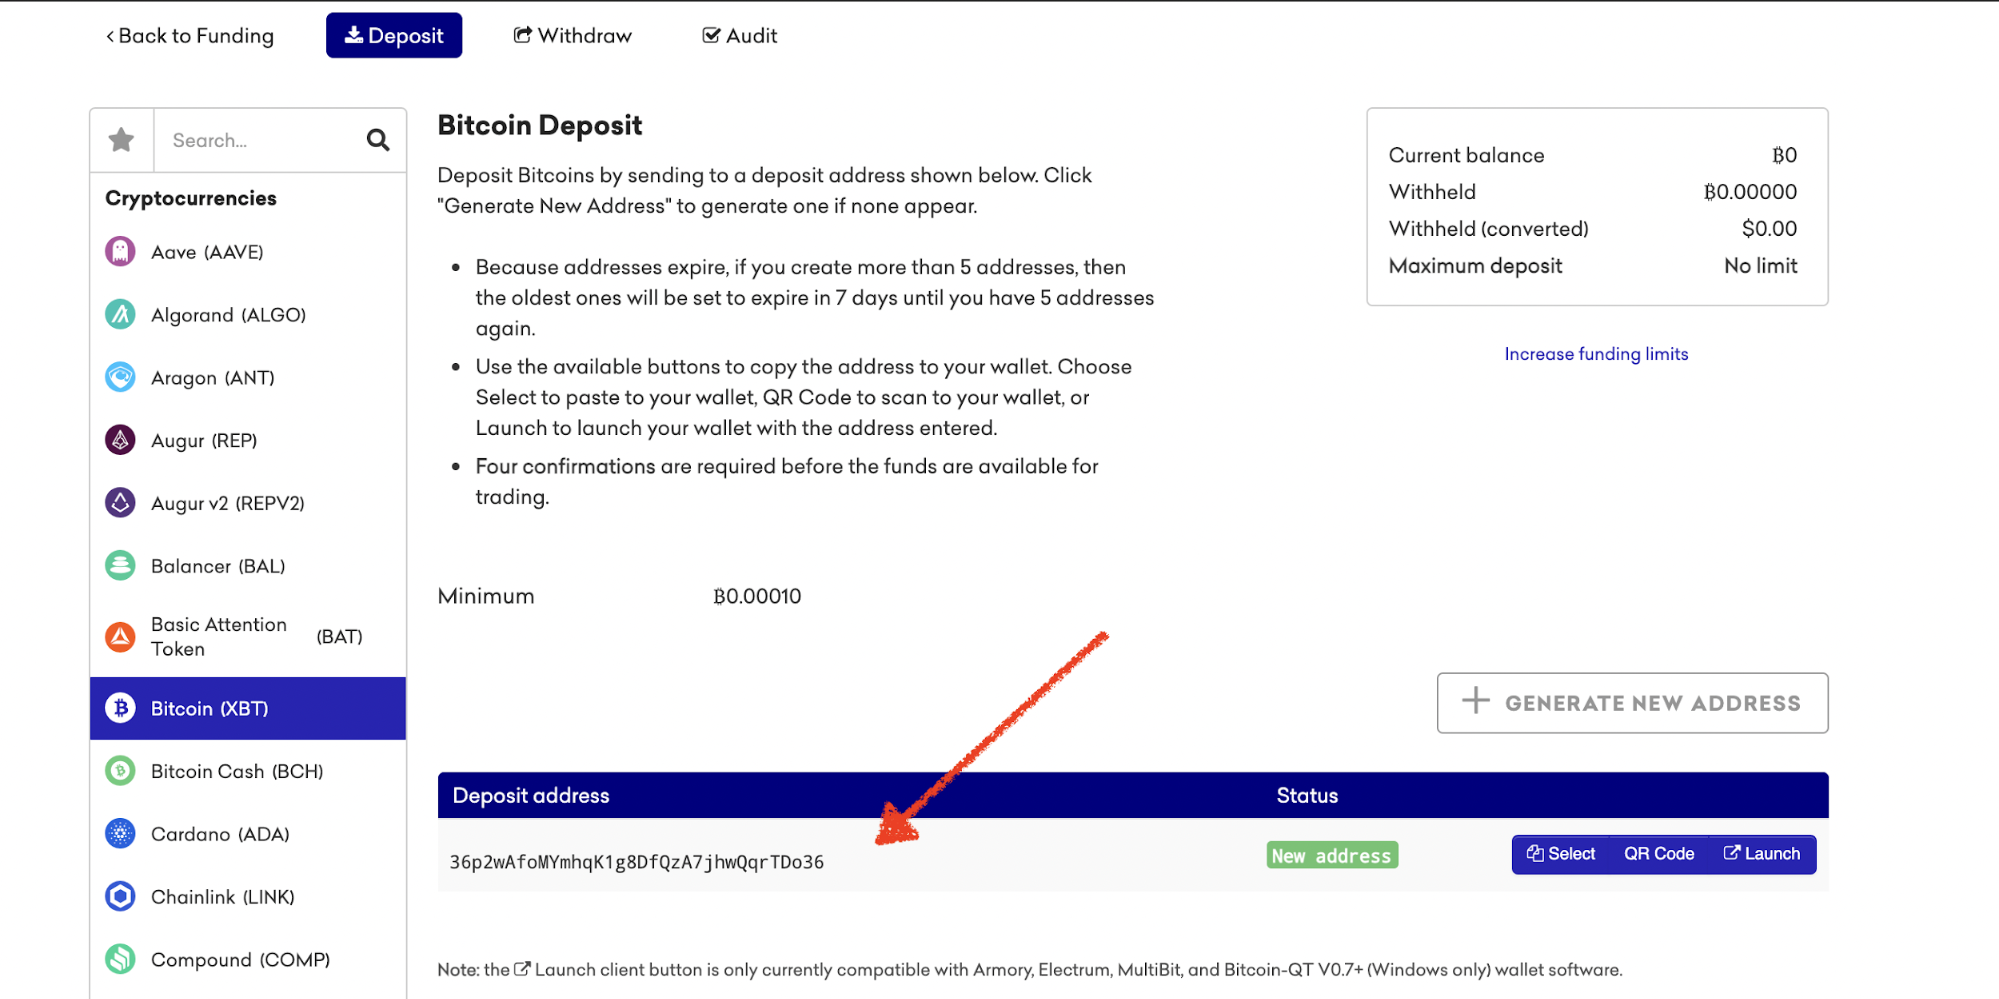 How to transfer from Coinbase Pro to Kraken?